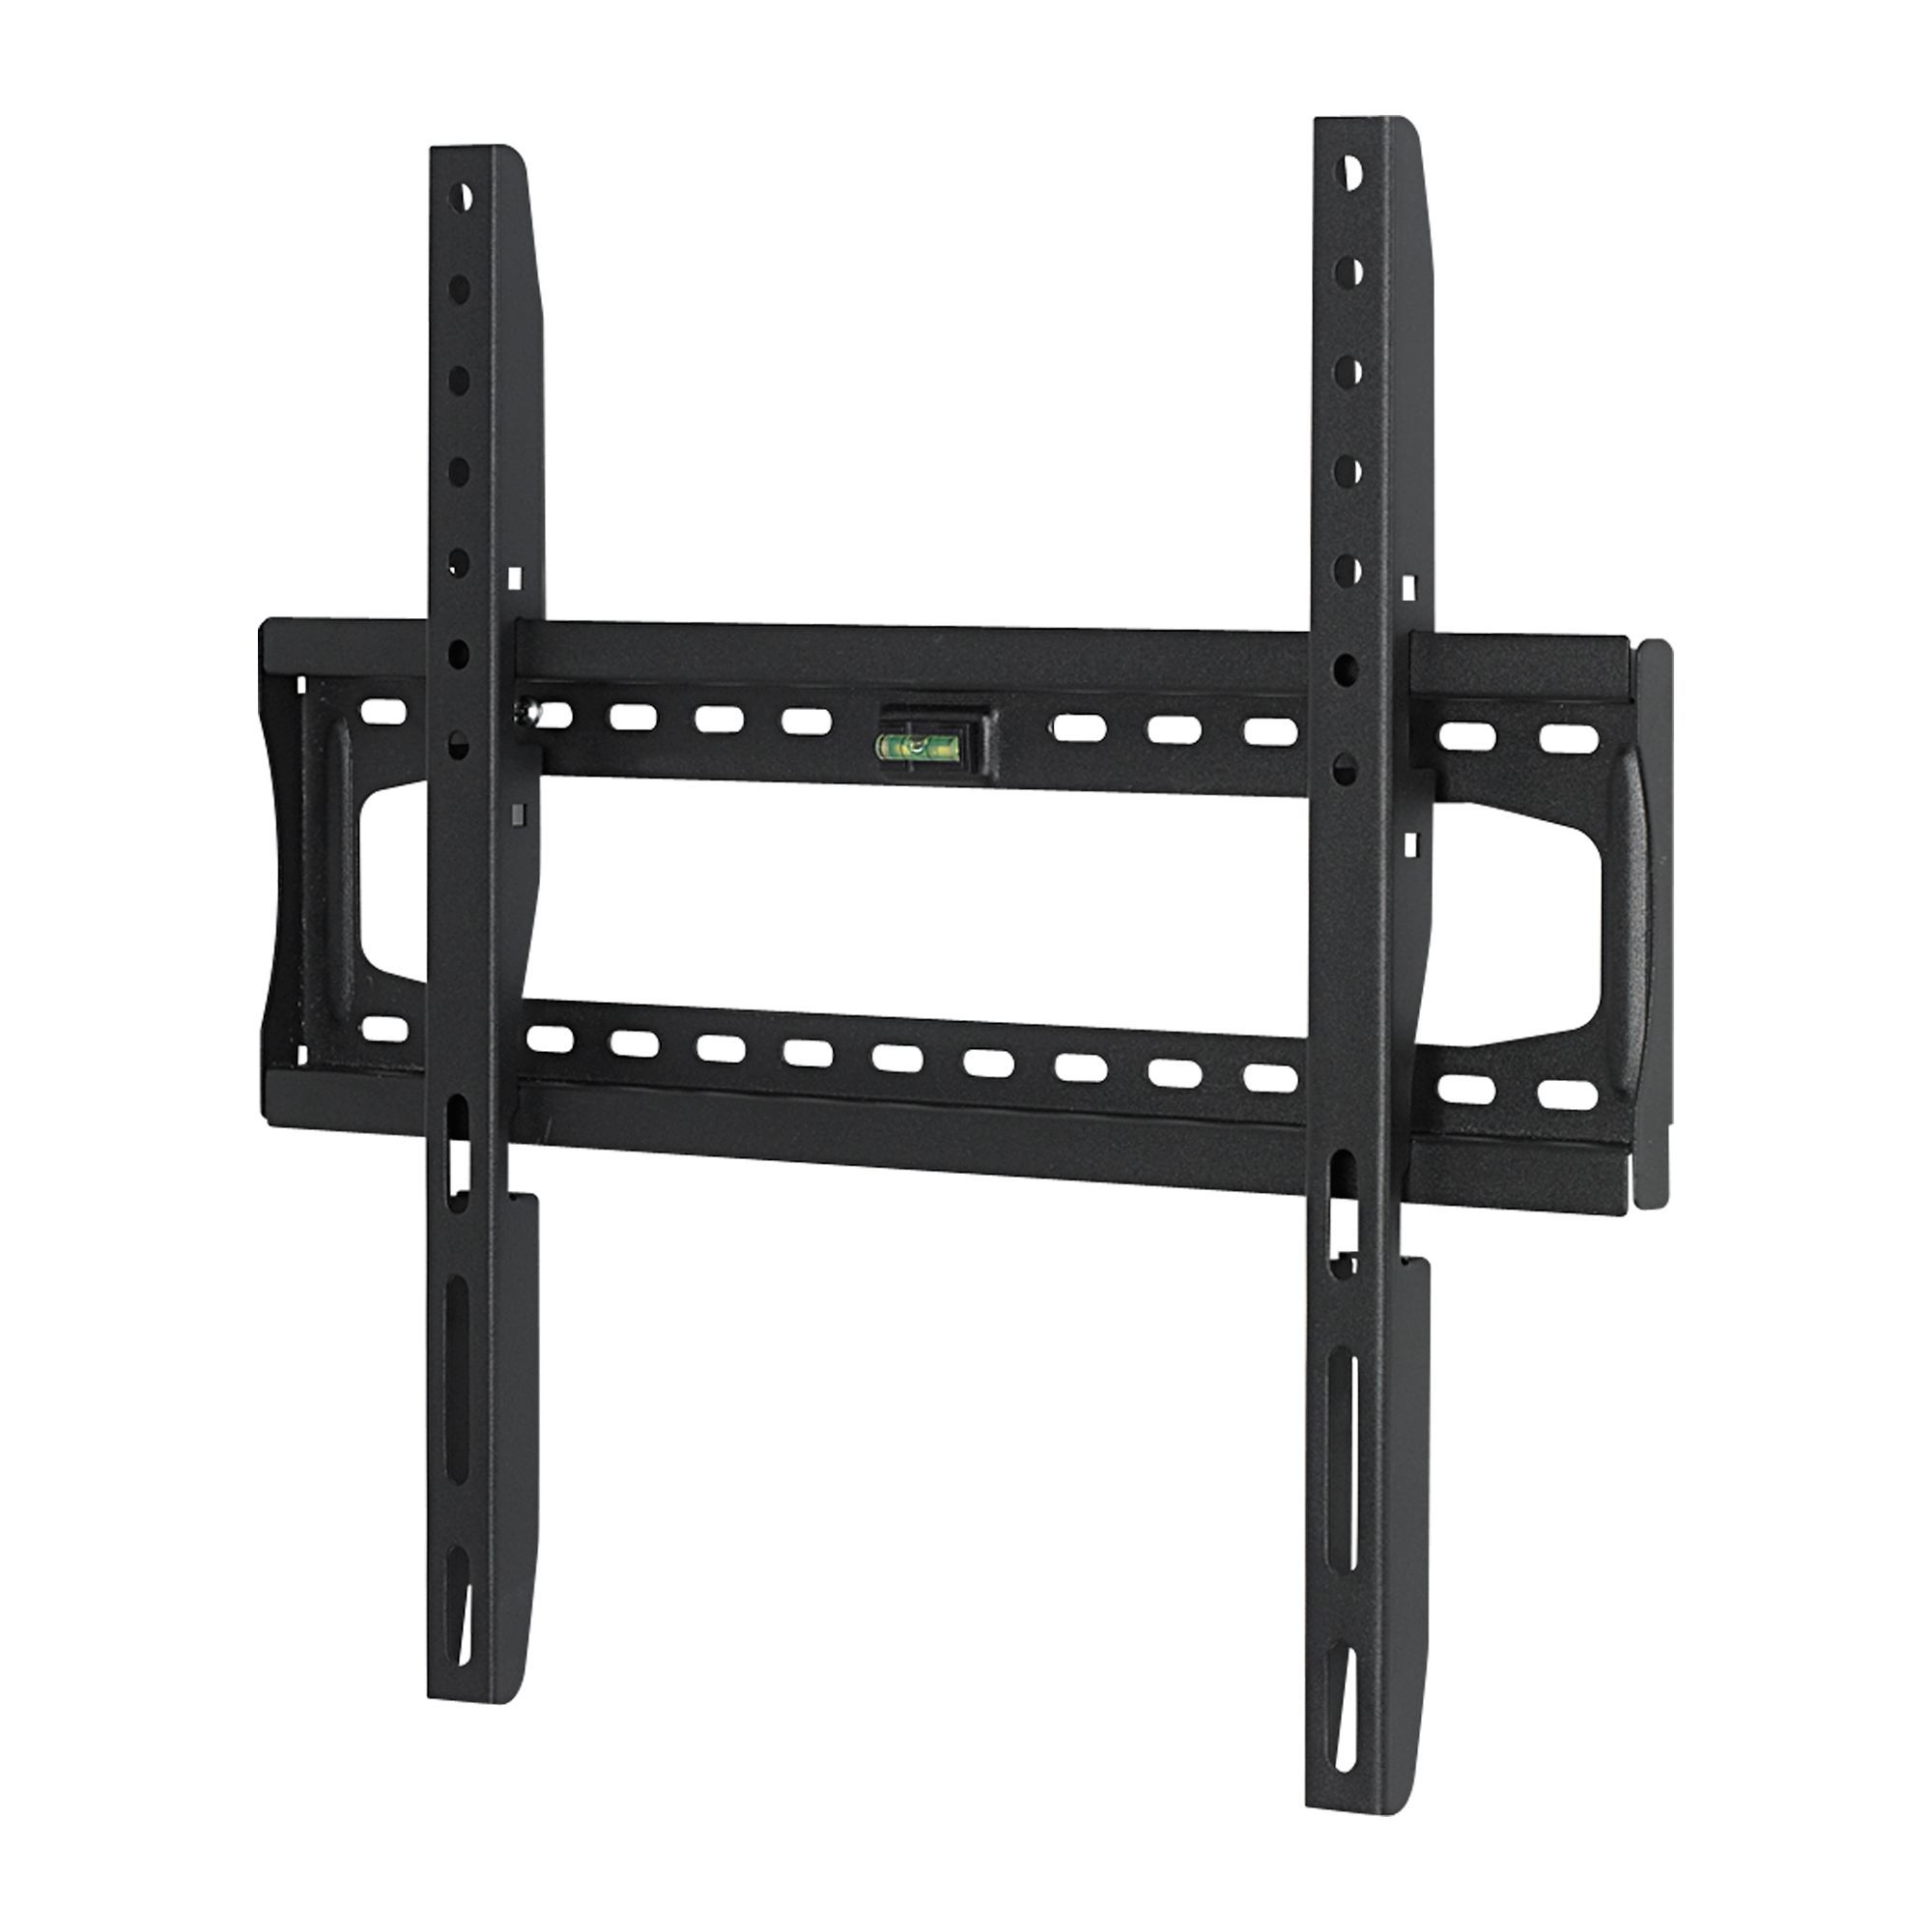 Ross Black Fixed Tv Mounting Bracket 32-50 Inches